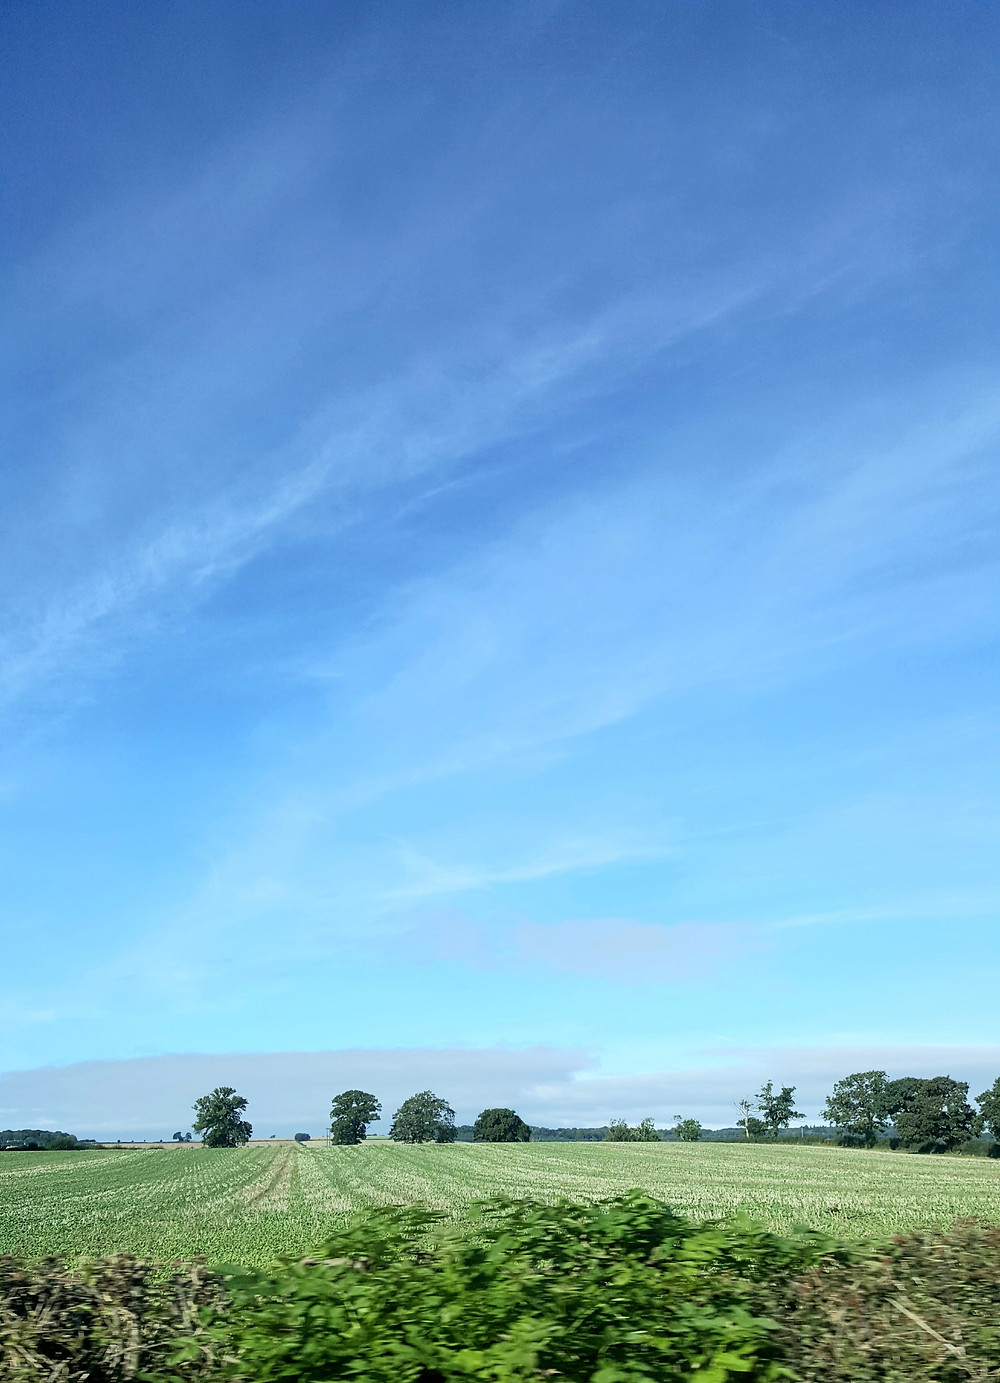 Vast Blue skies  green planted fields  cultivated fields Summer sky  Carefree Day